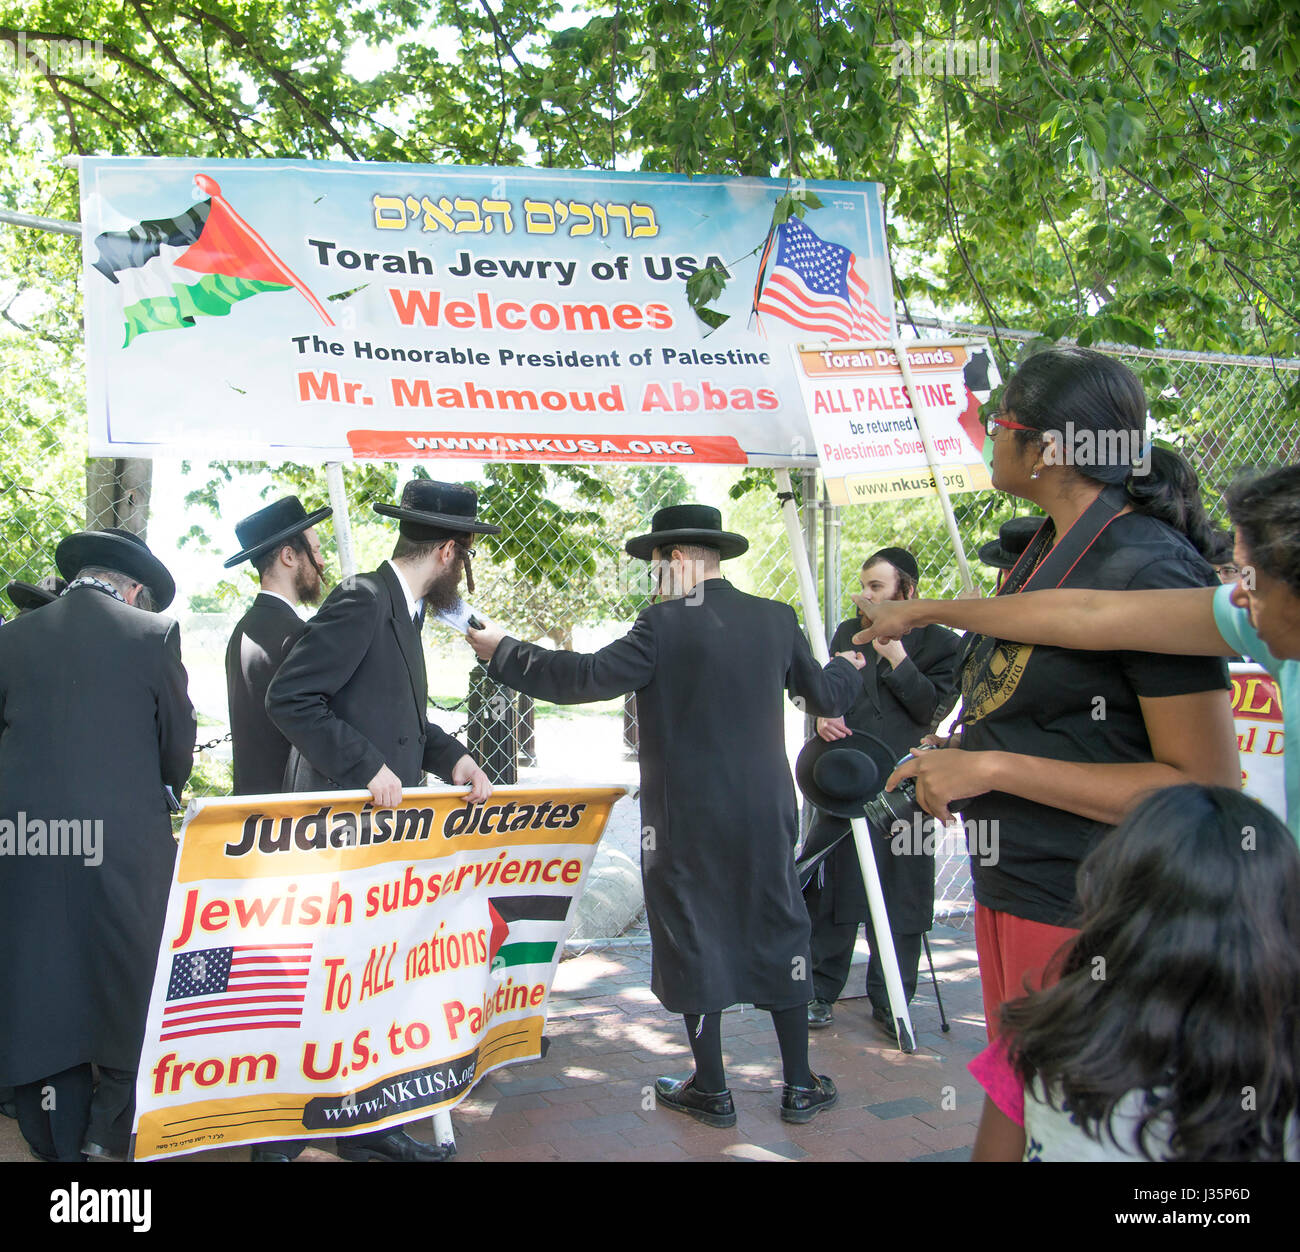 Washington DC, May 3, 2017, USA: Members of the Neturei Karta International Jews against Zionism hold a small protest - Stock Image